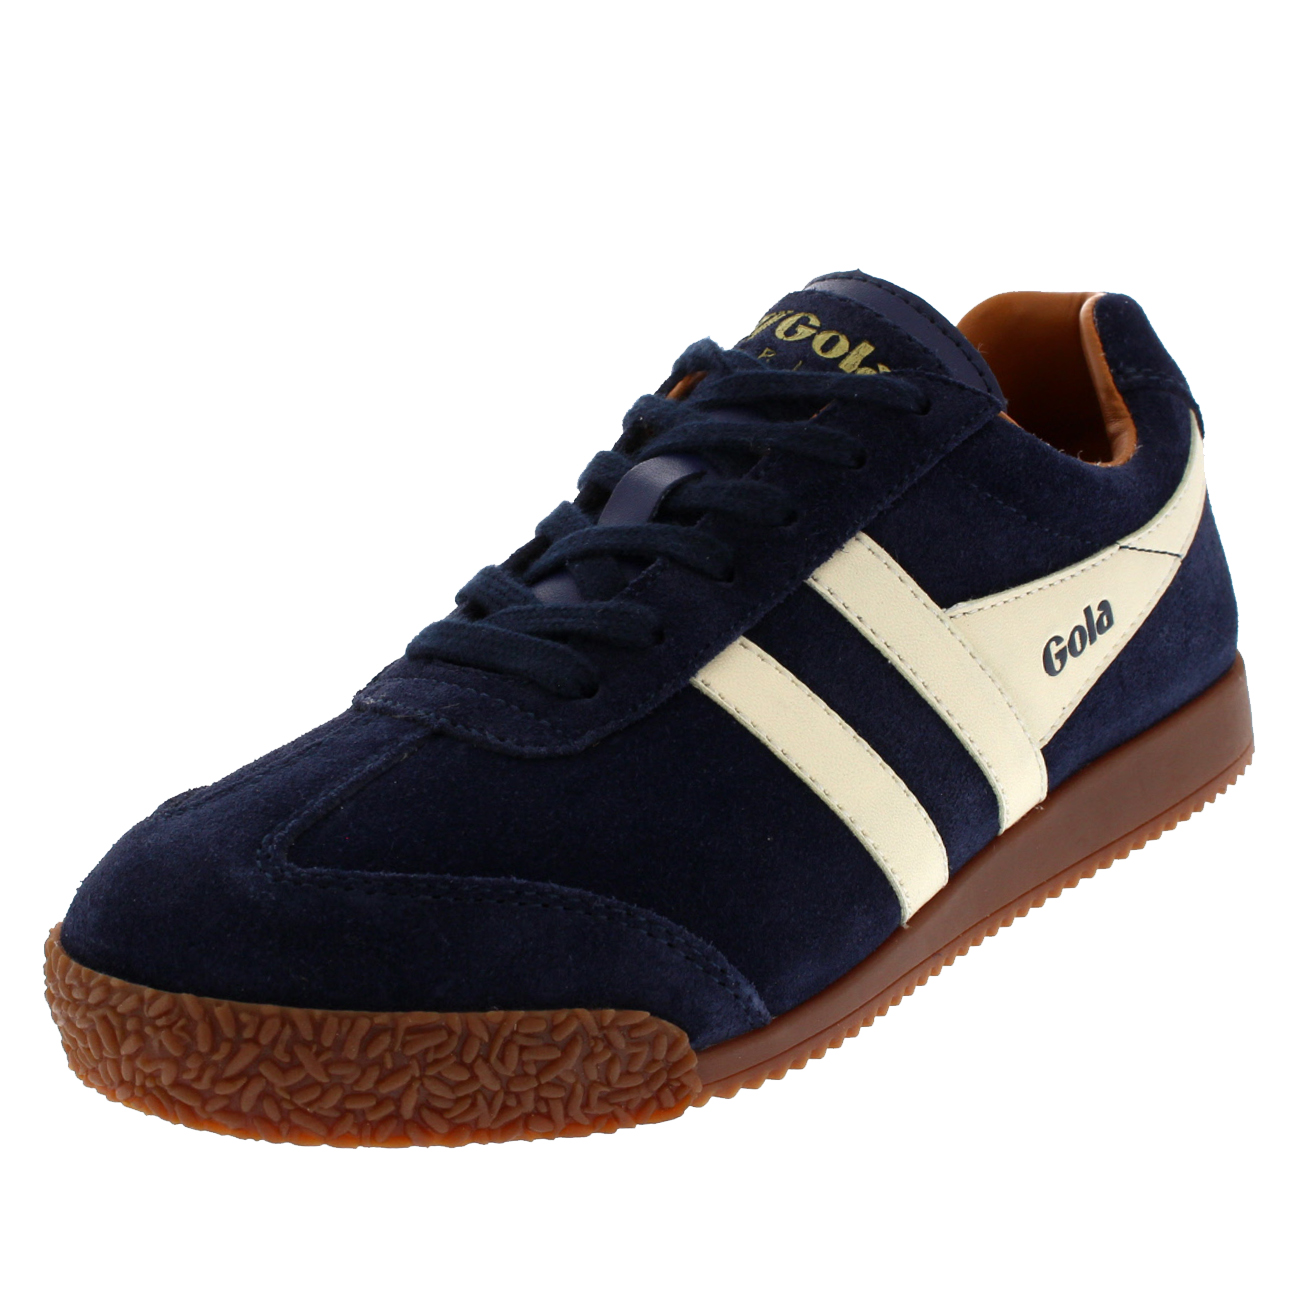 Gola Harrier Suede